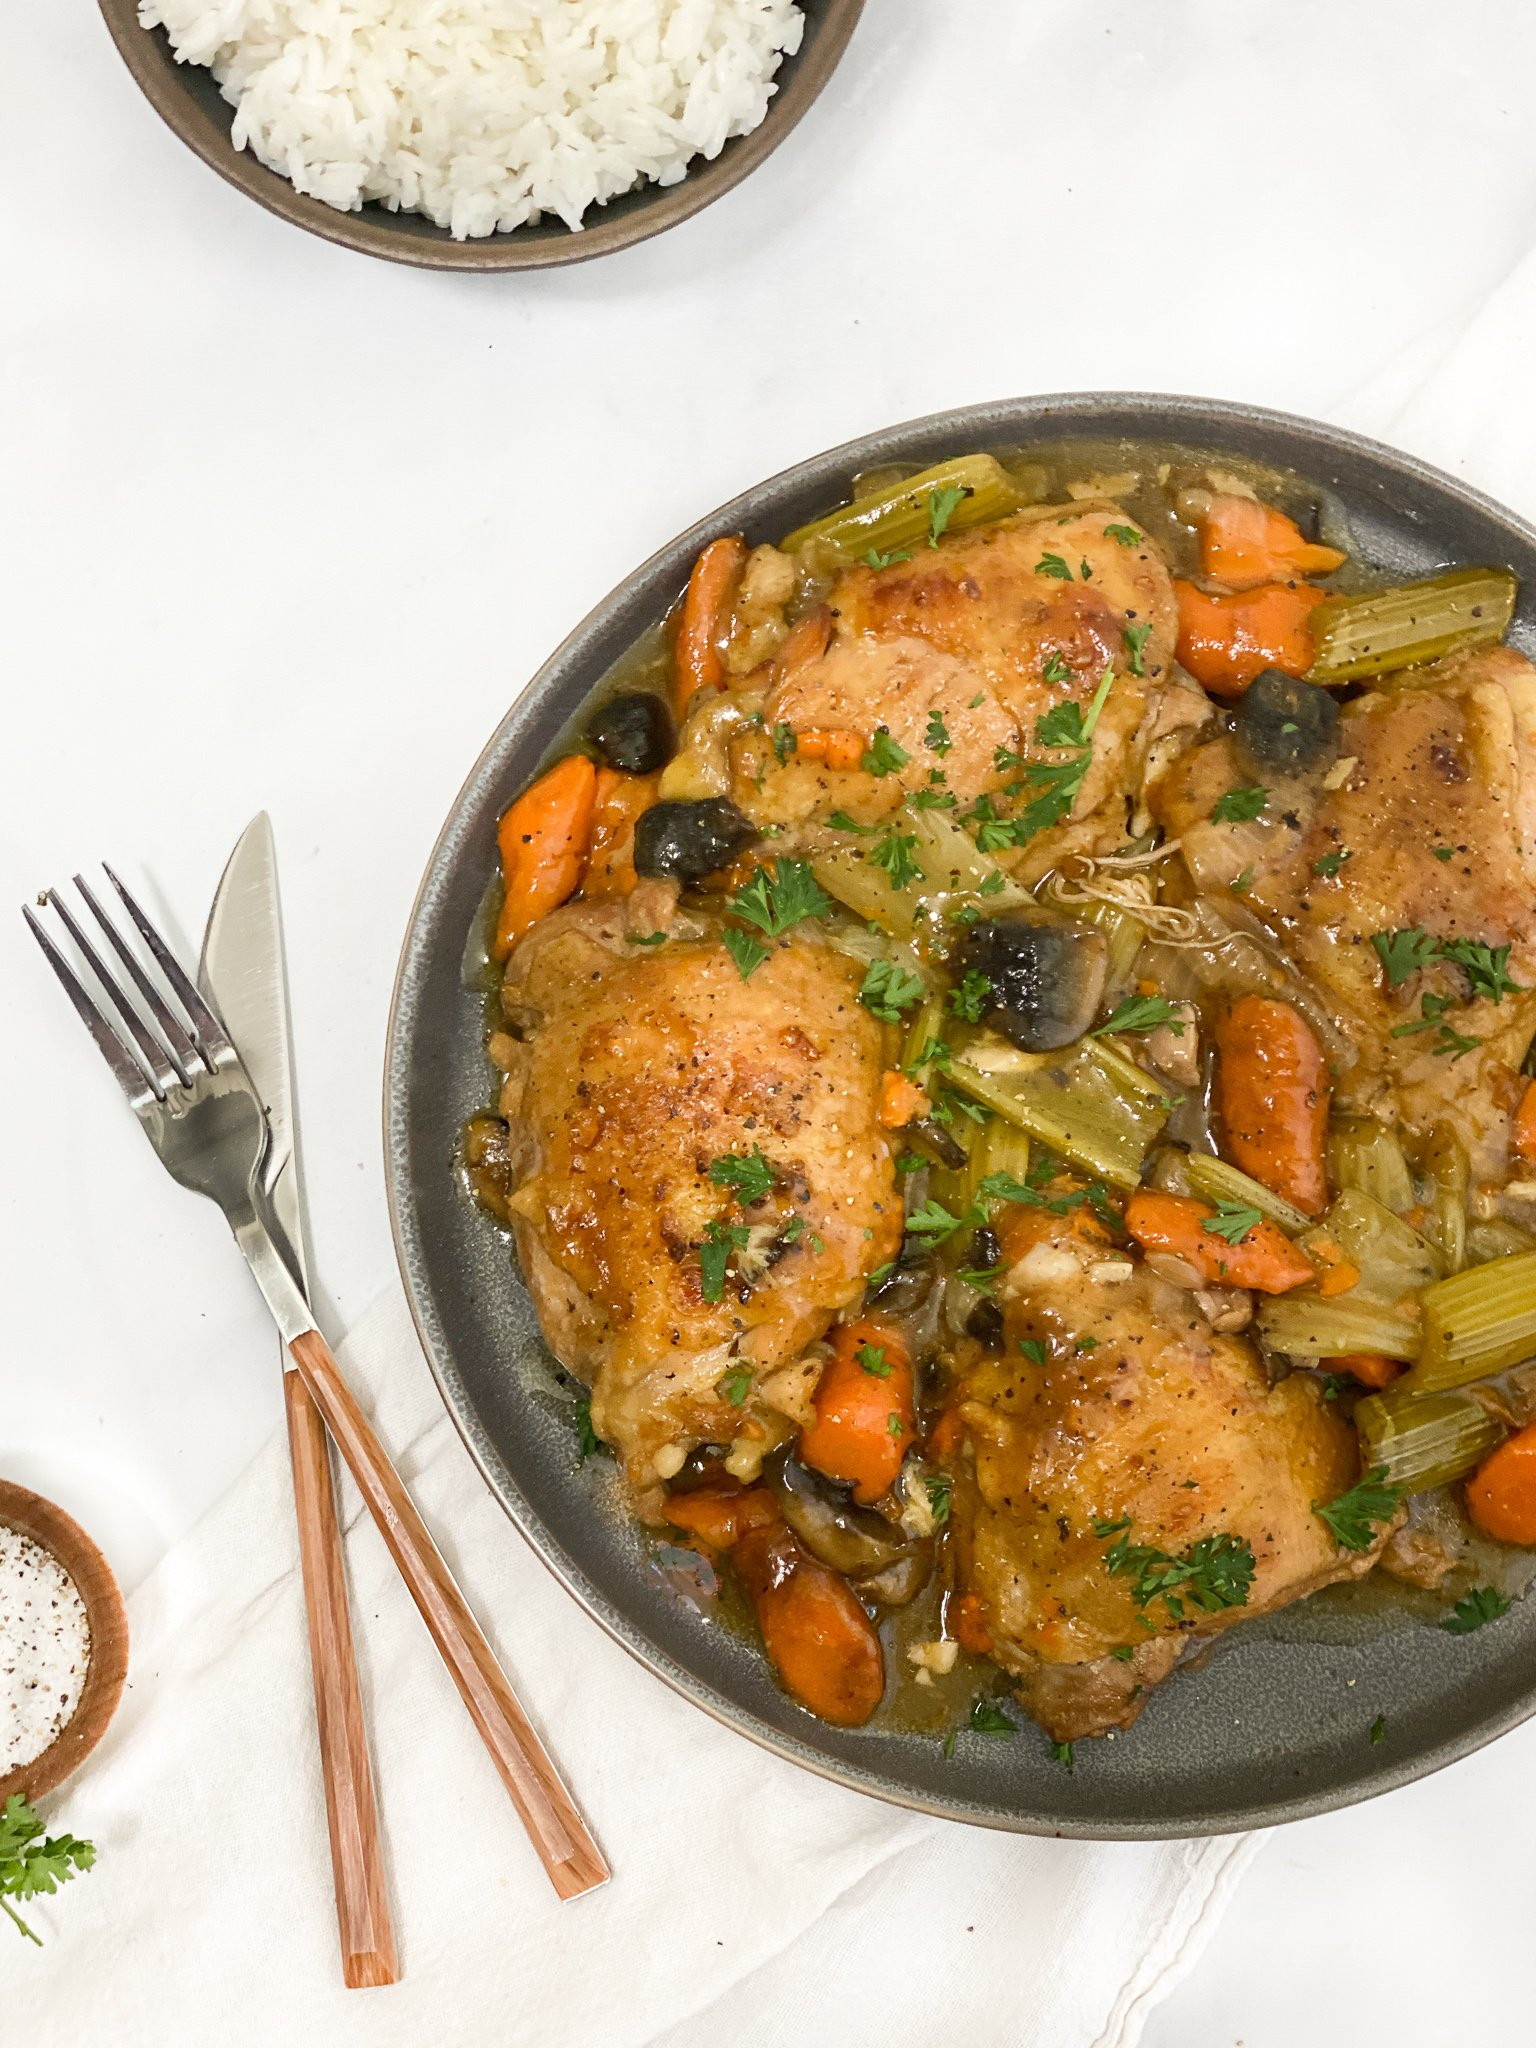 Rustic braised chicken with it's roasted veggies and pan gravy. with a bowl of jasmine rice on the side.